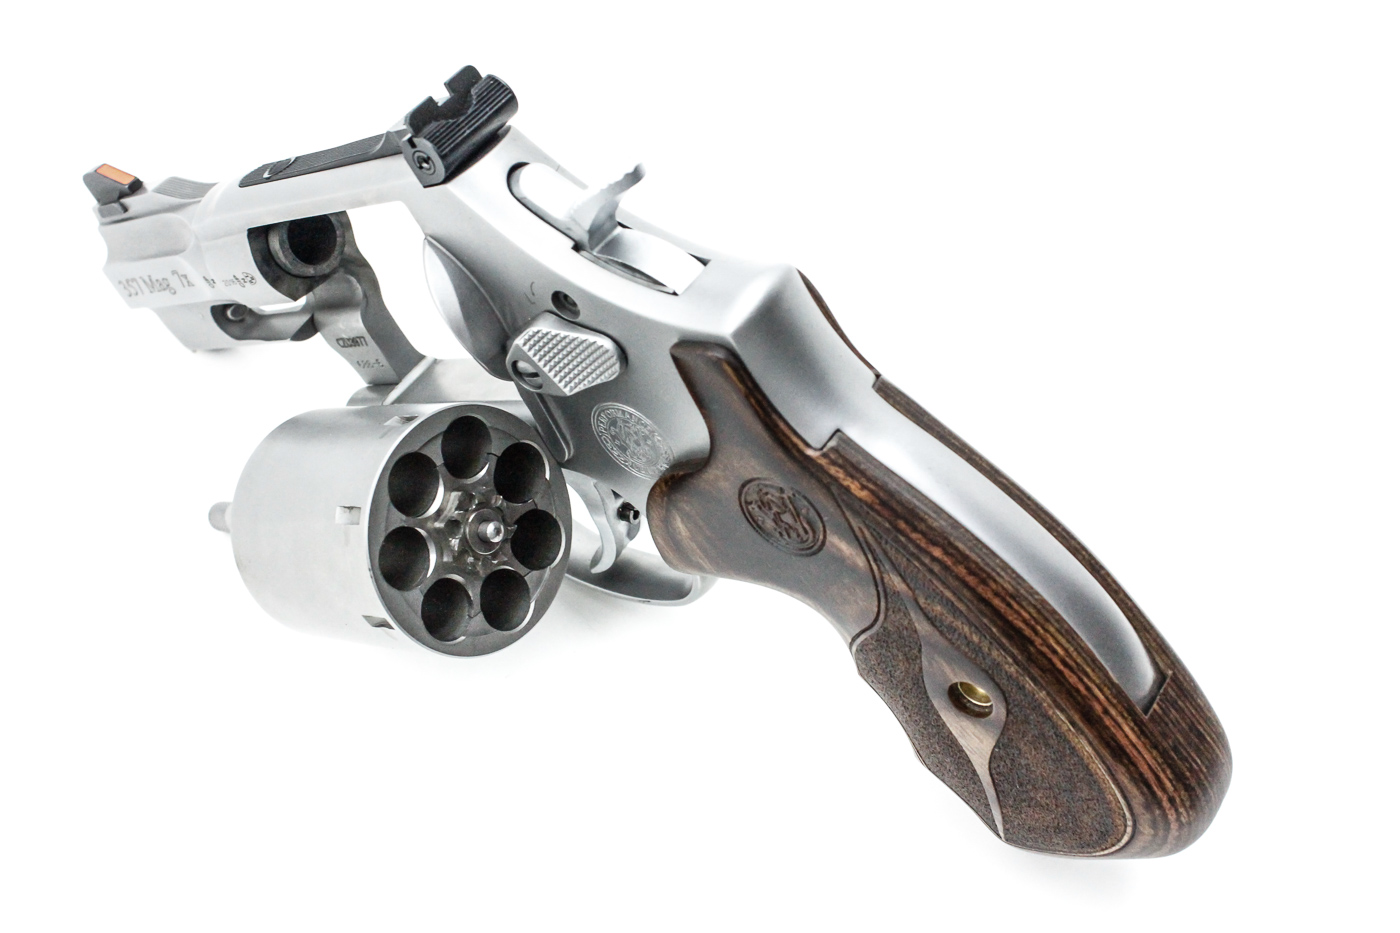 Smith & Wesson 686 Performance Center 7-Shot, .357 Magnum - Image 3